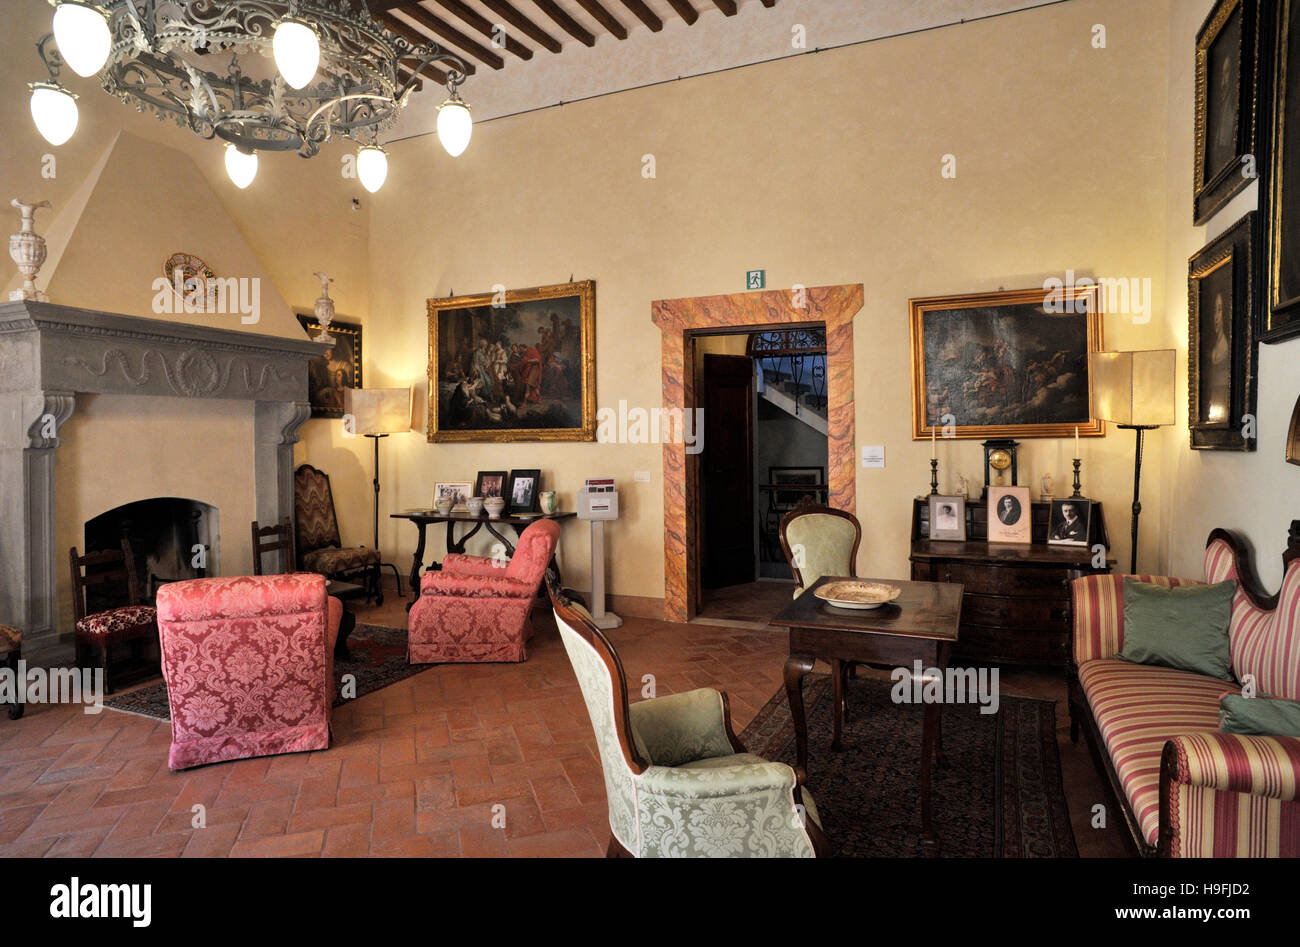 italy, tuscany, san gimignano, torre and casa campatelli, ancient house tower museum Stock Photo